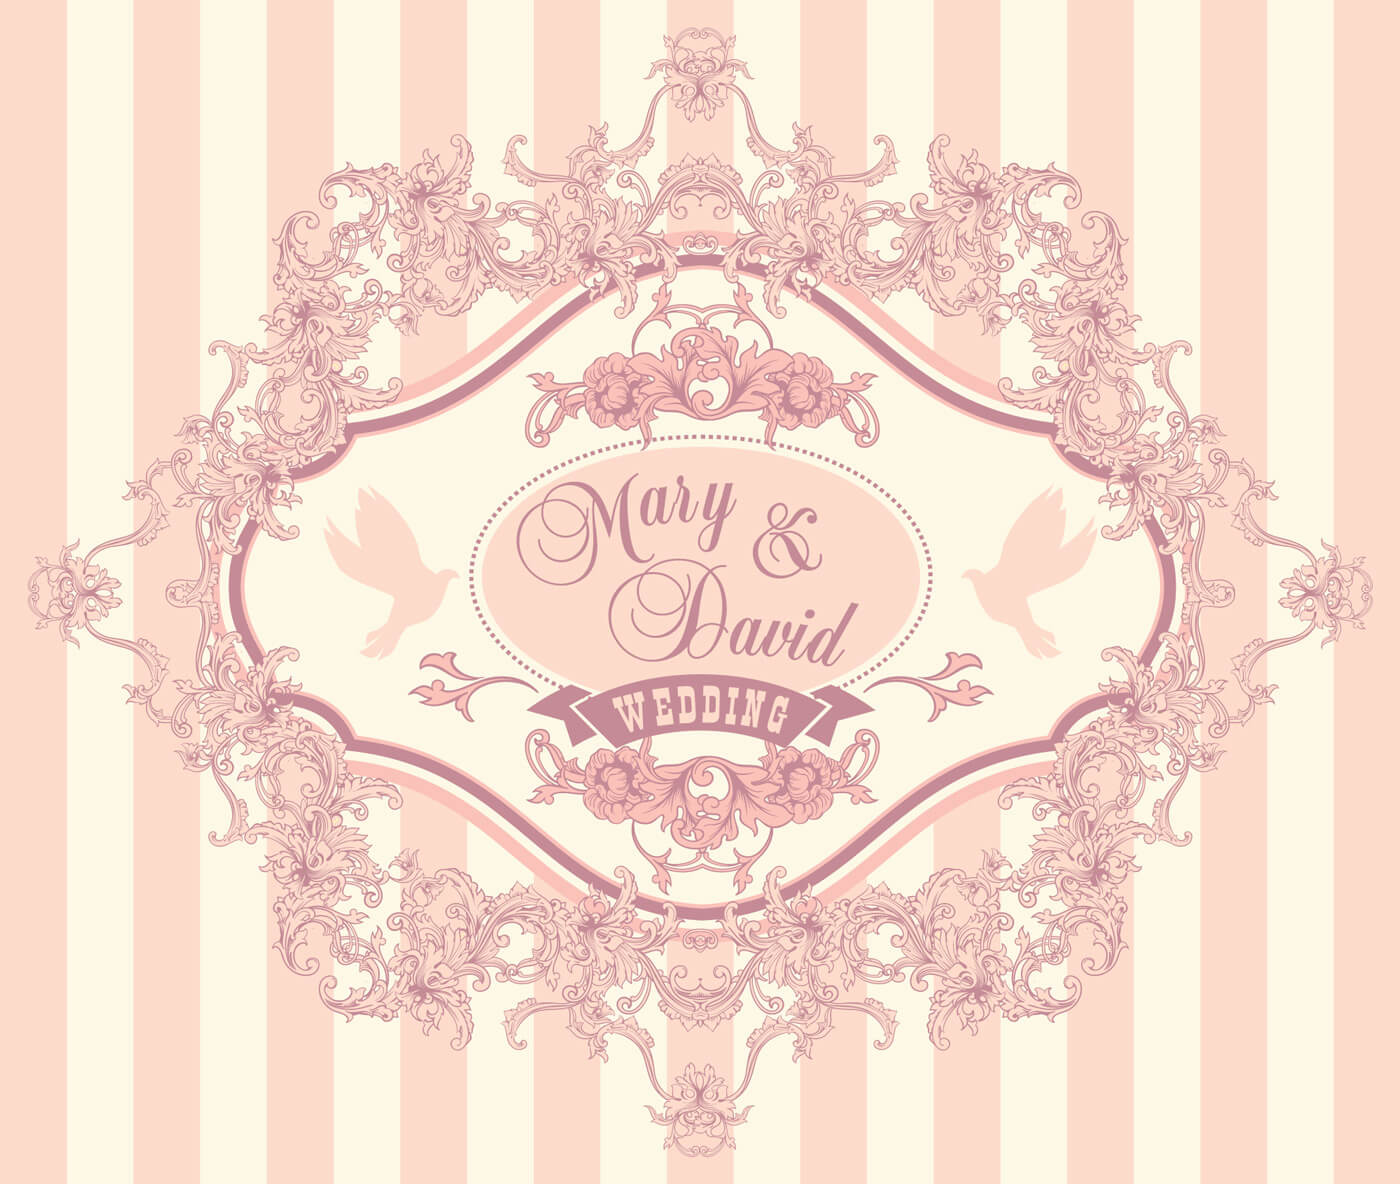 1400x1184 Free Vector Wedding Invitation Cards With Floral Elements. Vector